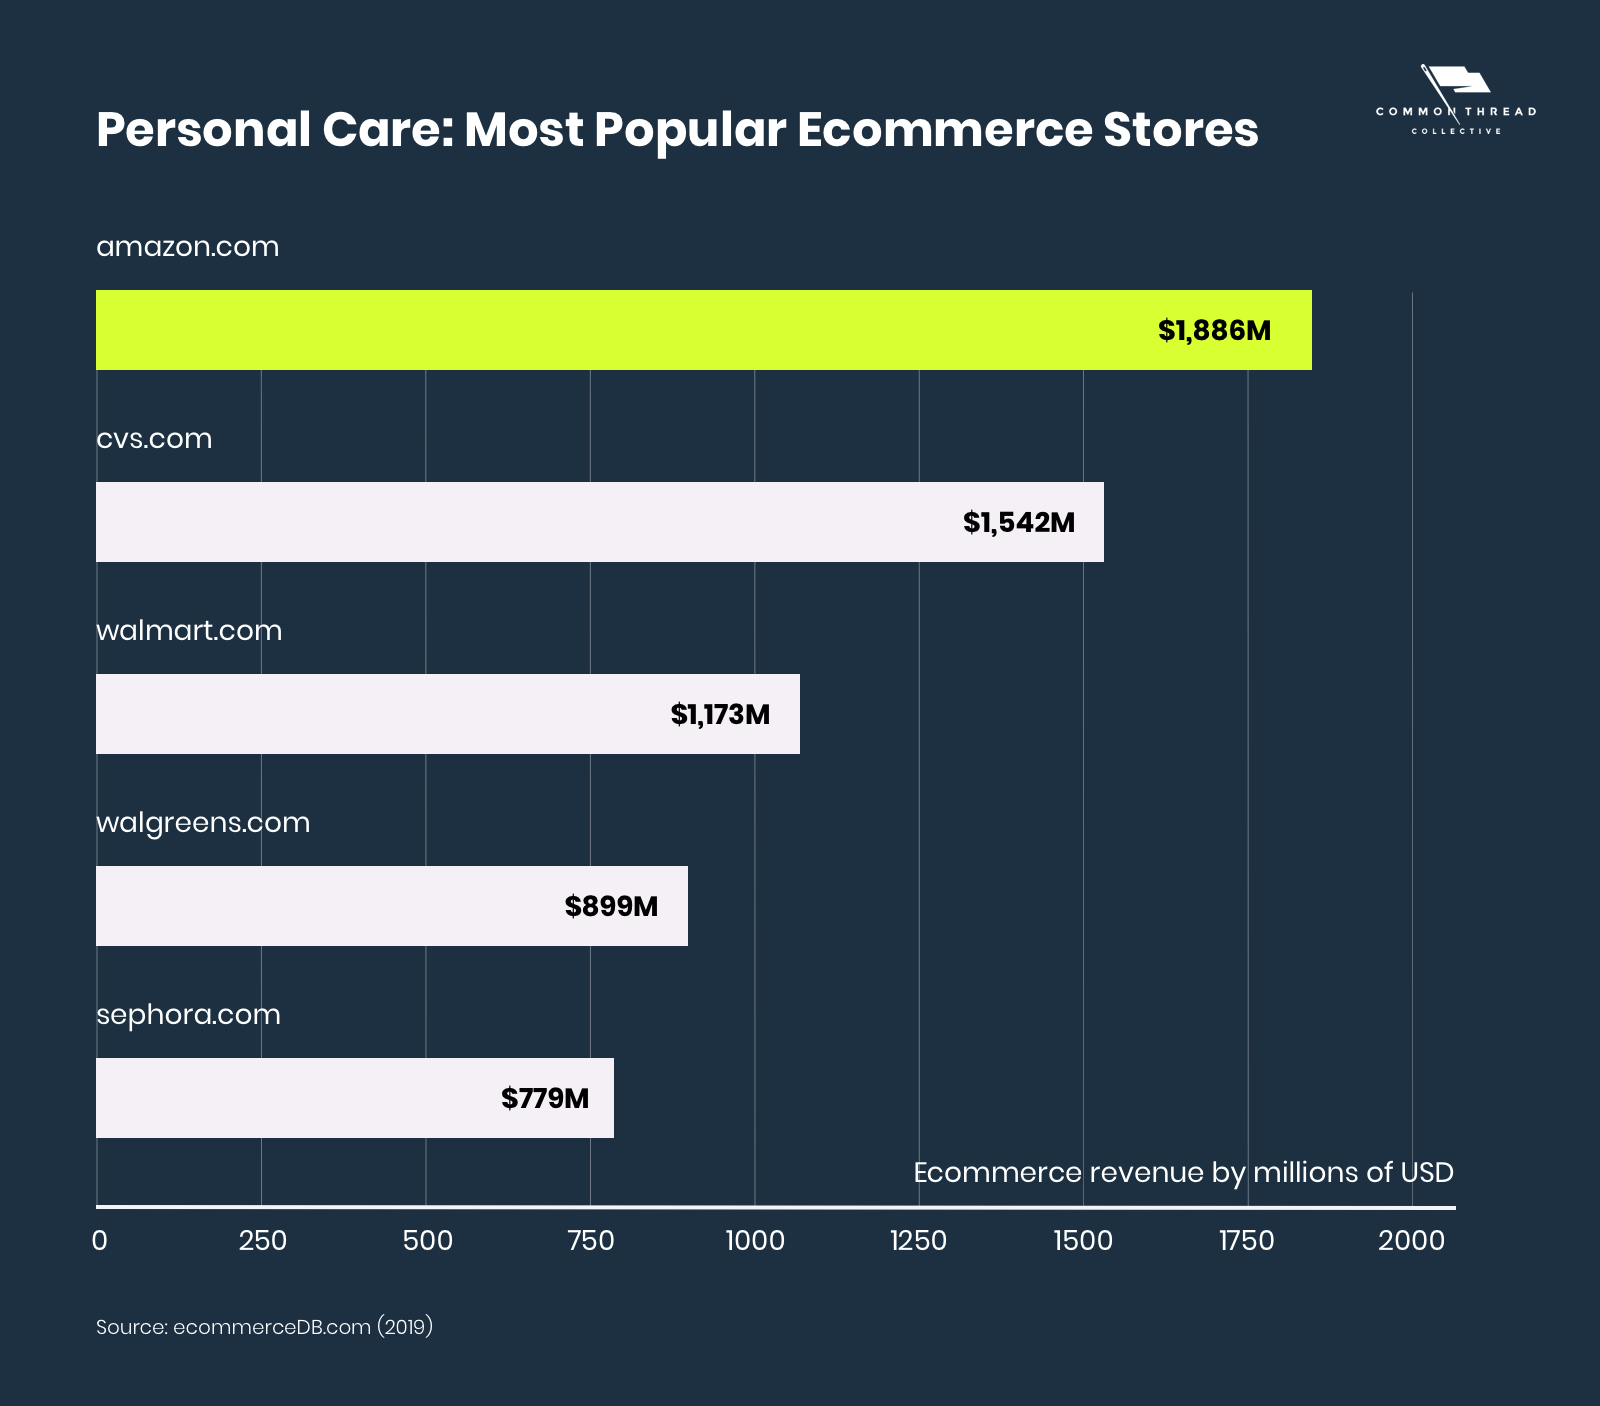 Personal Care Most Popular Ecommerce Stores